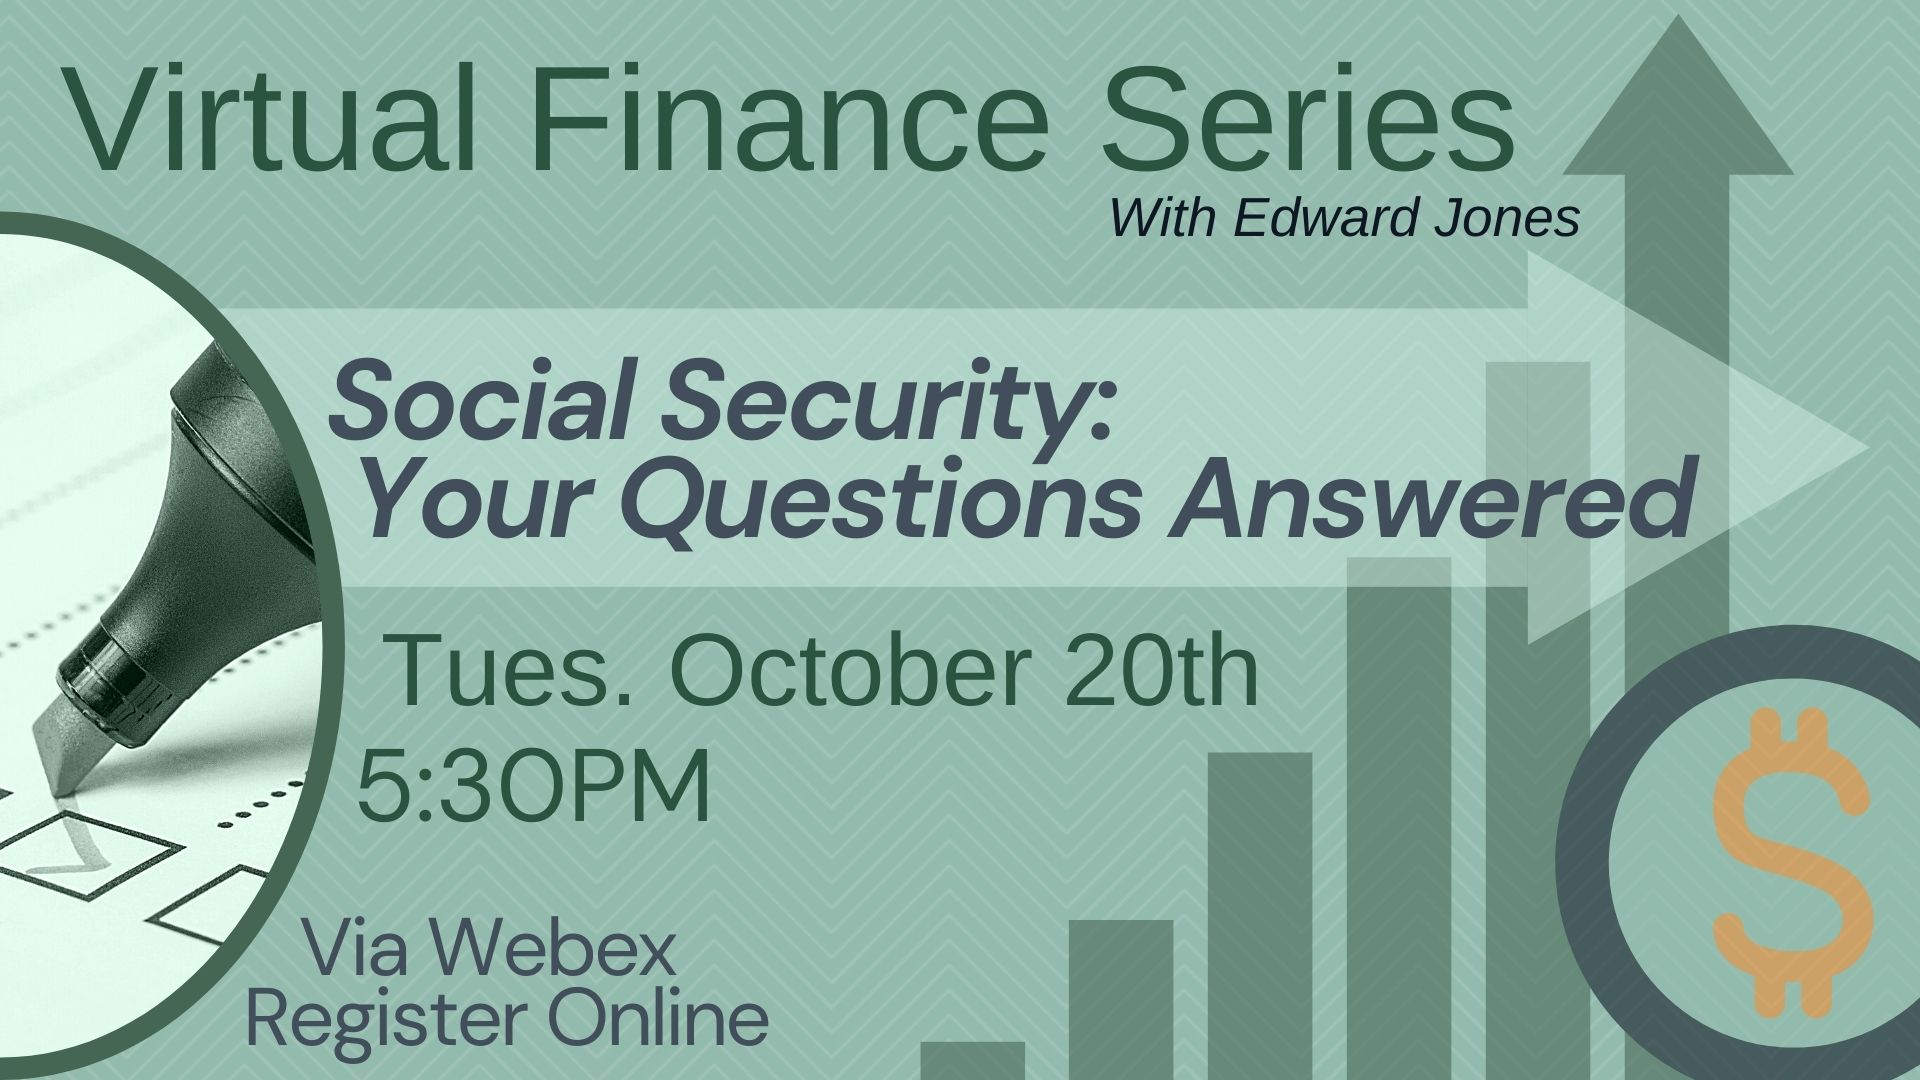 Virtual Finance Series: Social Security: Your Questions Answered